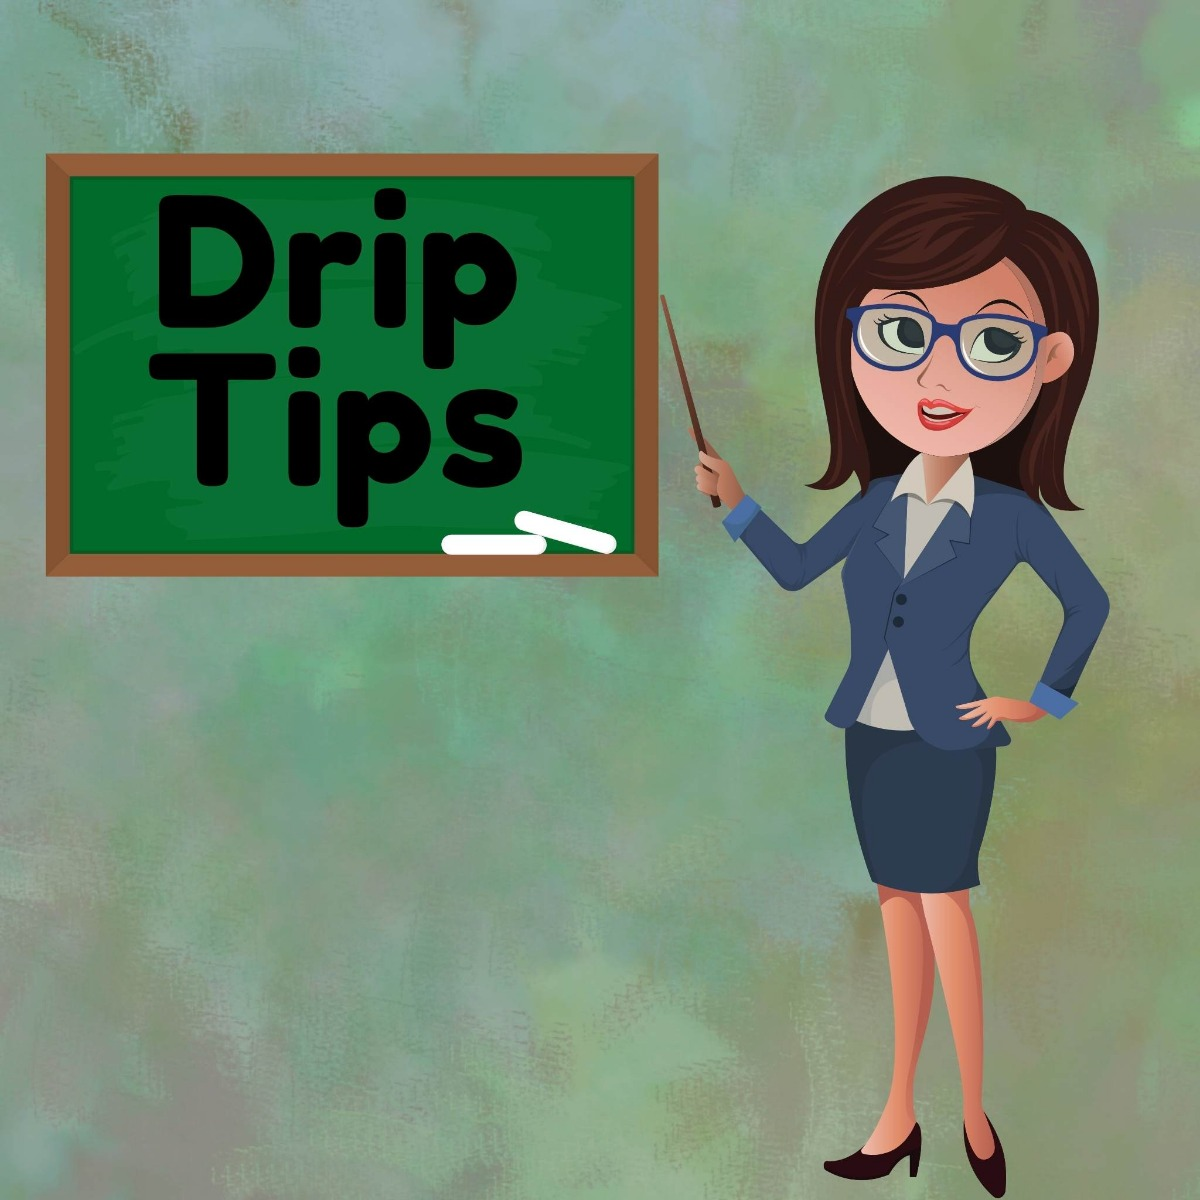 Teacher pointing to a chalk board saying drip tips